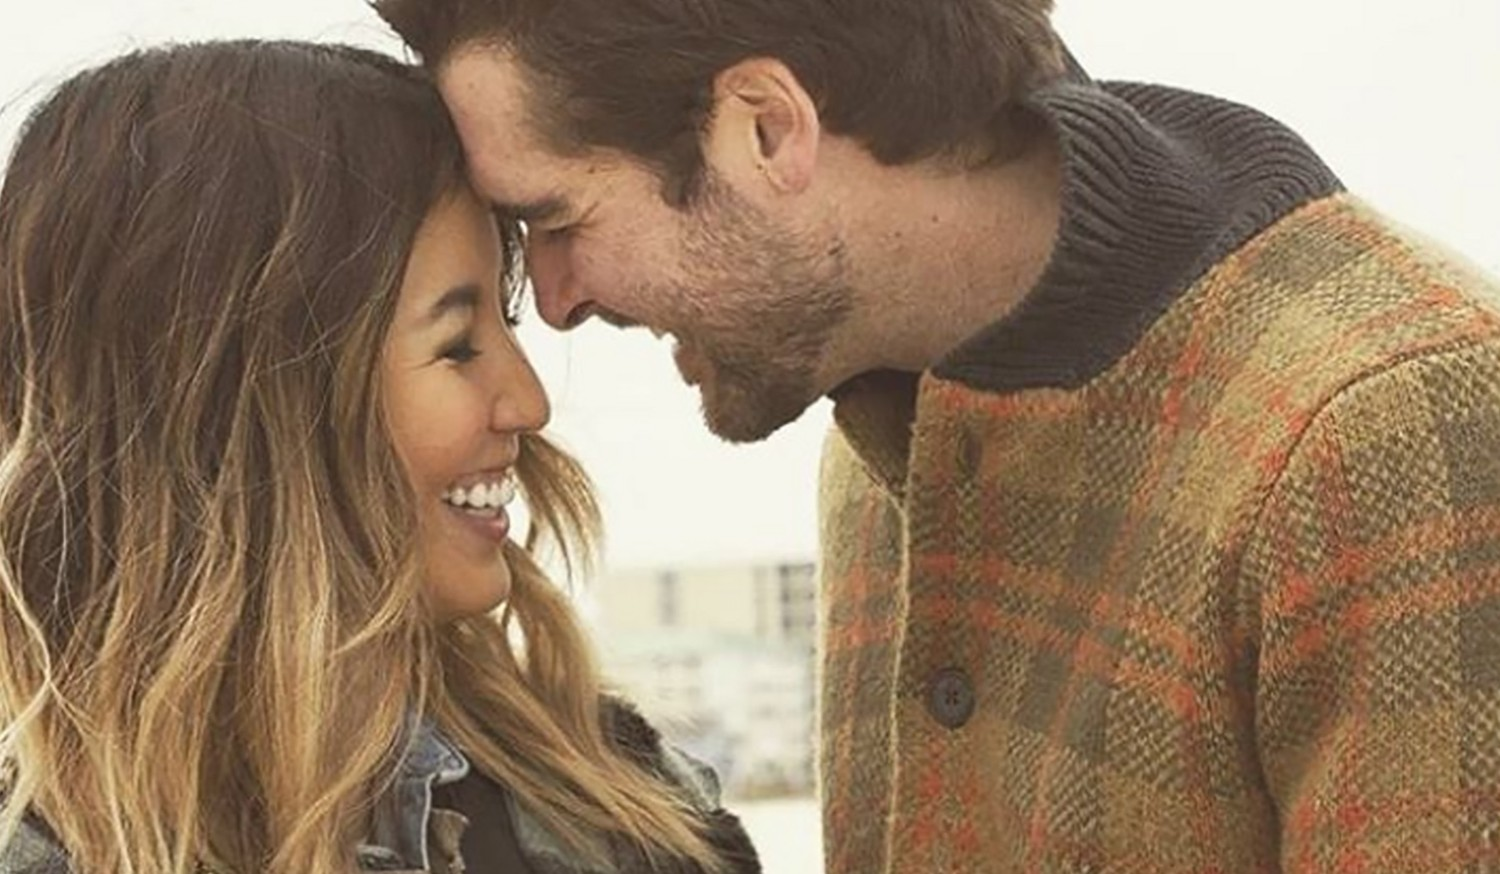 Rebecca Robertson and Johnreed Loflin pose in engagement photo